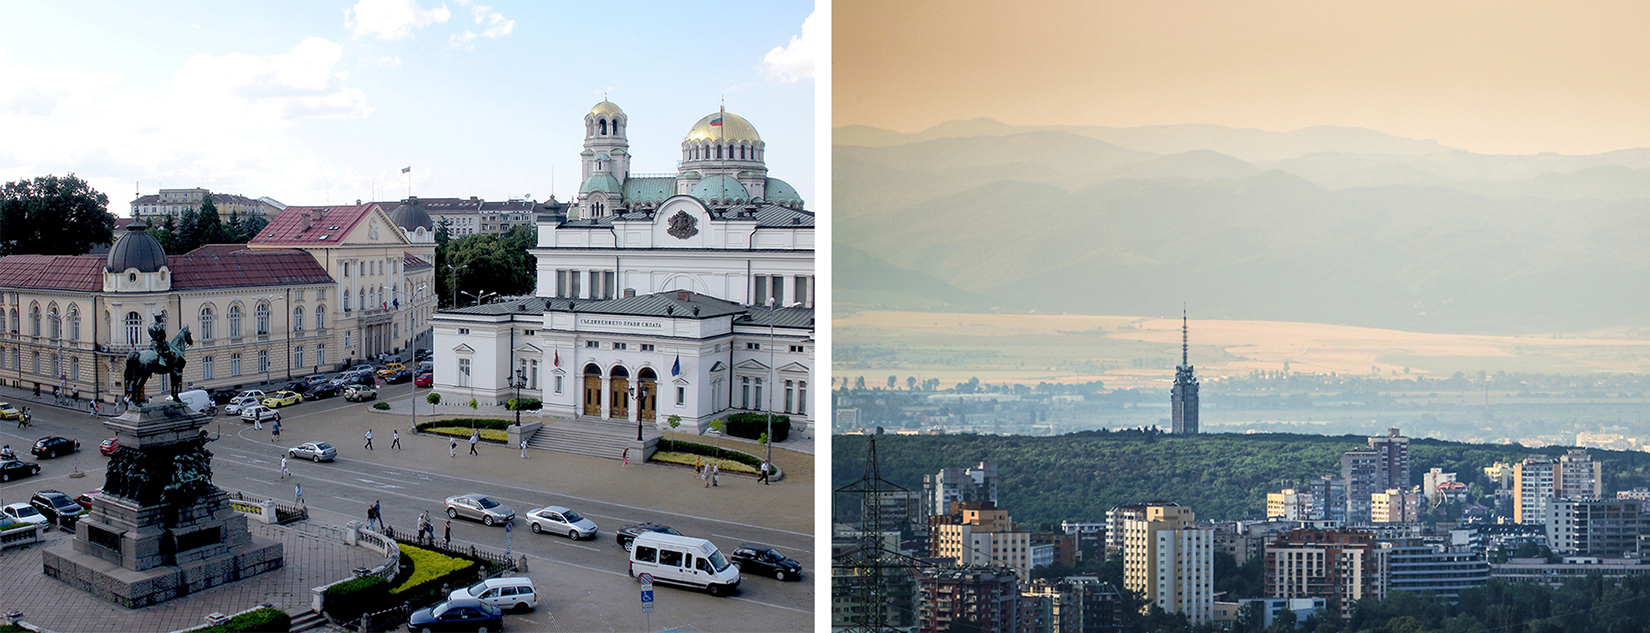 Left: The National Assembly, Monument to the Liberators and Alexander Nevsky Cathedral. Photo by Jennifer Hitchcock; Right, a touch of summer mood in the sky above Sofia, Bulgaria. Photo by Georgi C. Images retrieve from Flickr.com